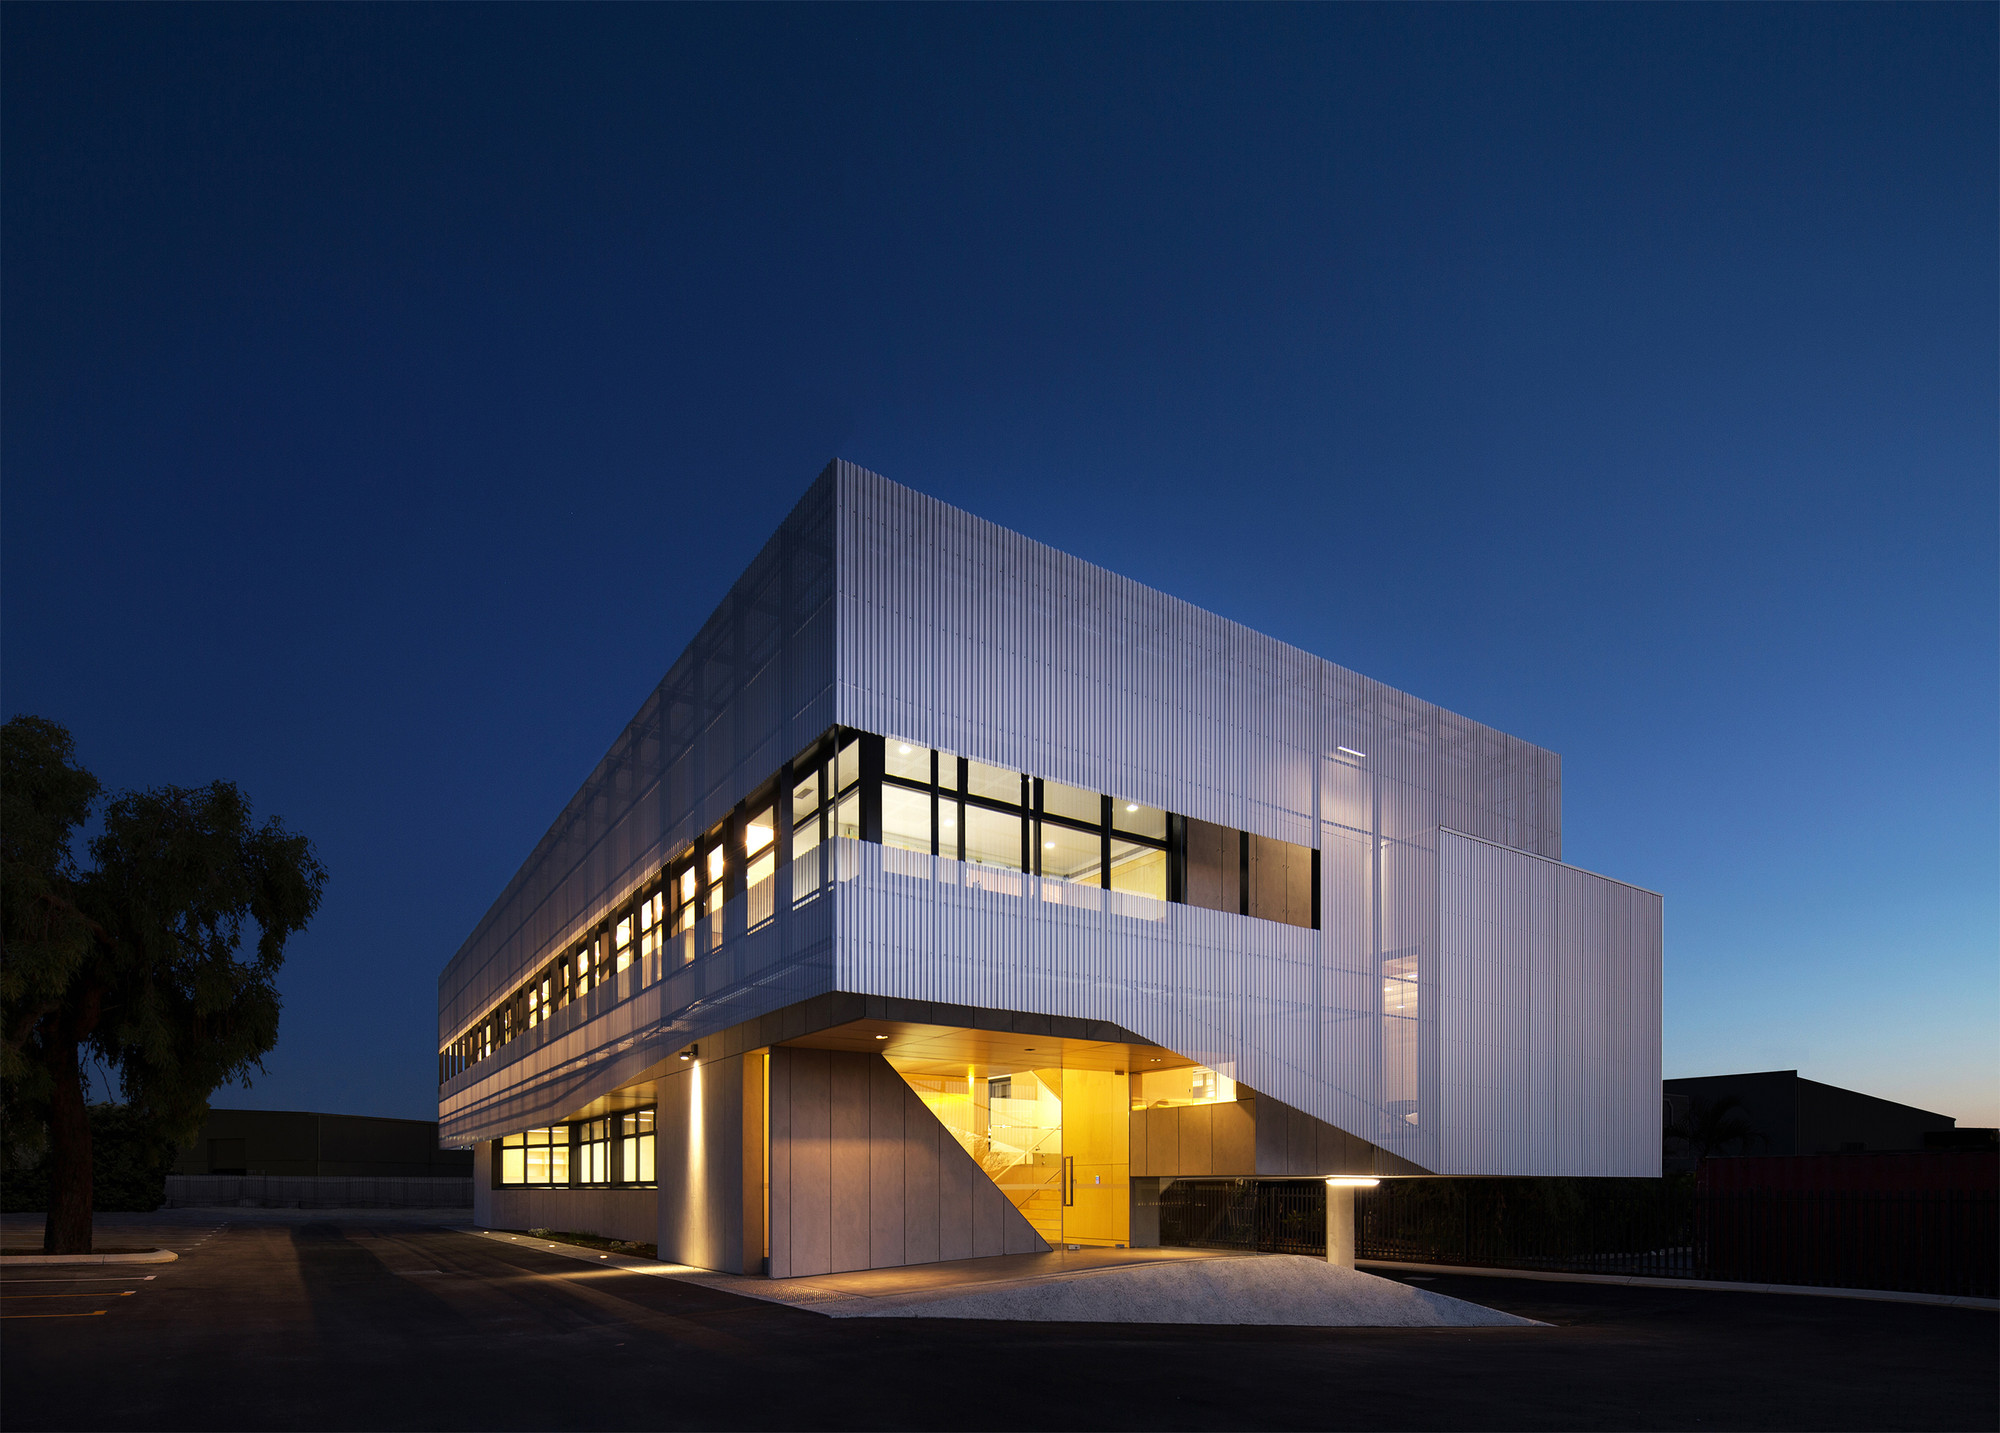 Sanwell office building braham architects archdaily for Office building architecture